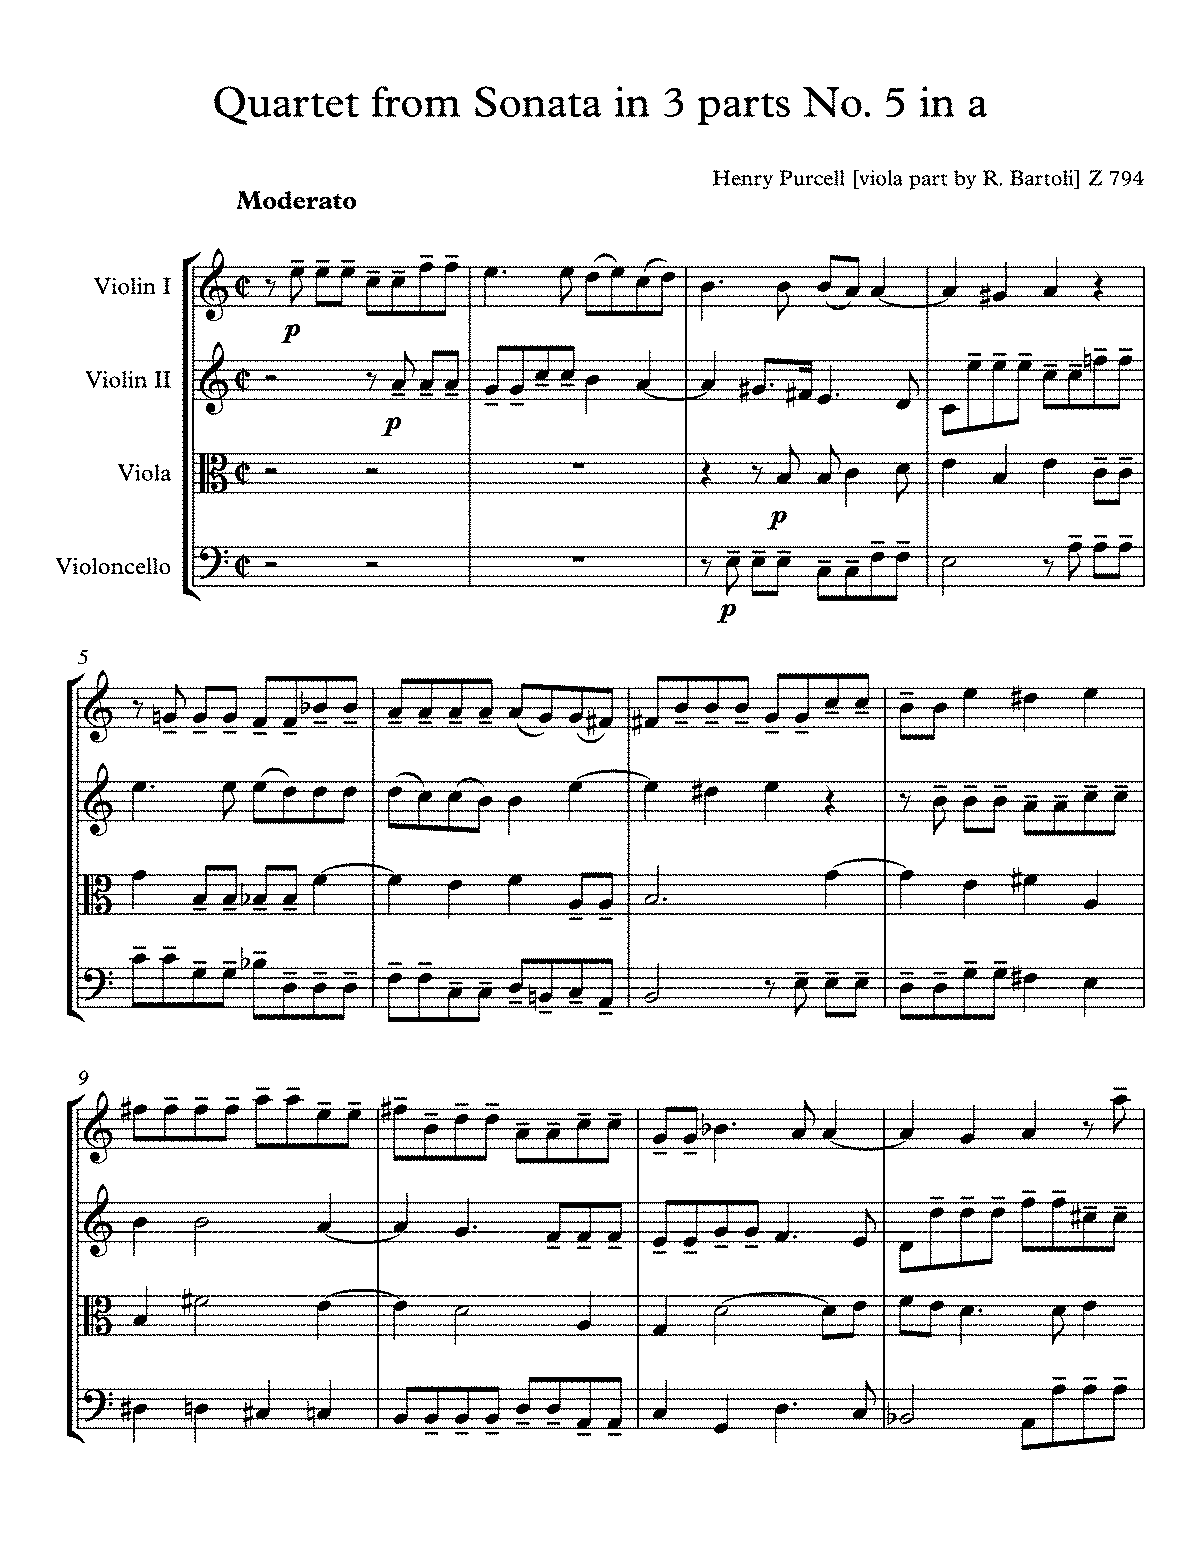 PMLP85673-Purcell Z 794 Sonata No. 5 in a va part russ D - Full Score.pdf